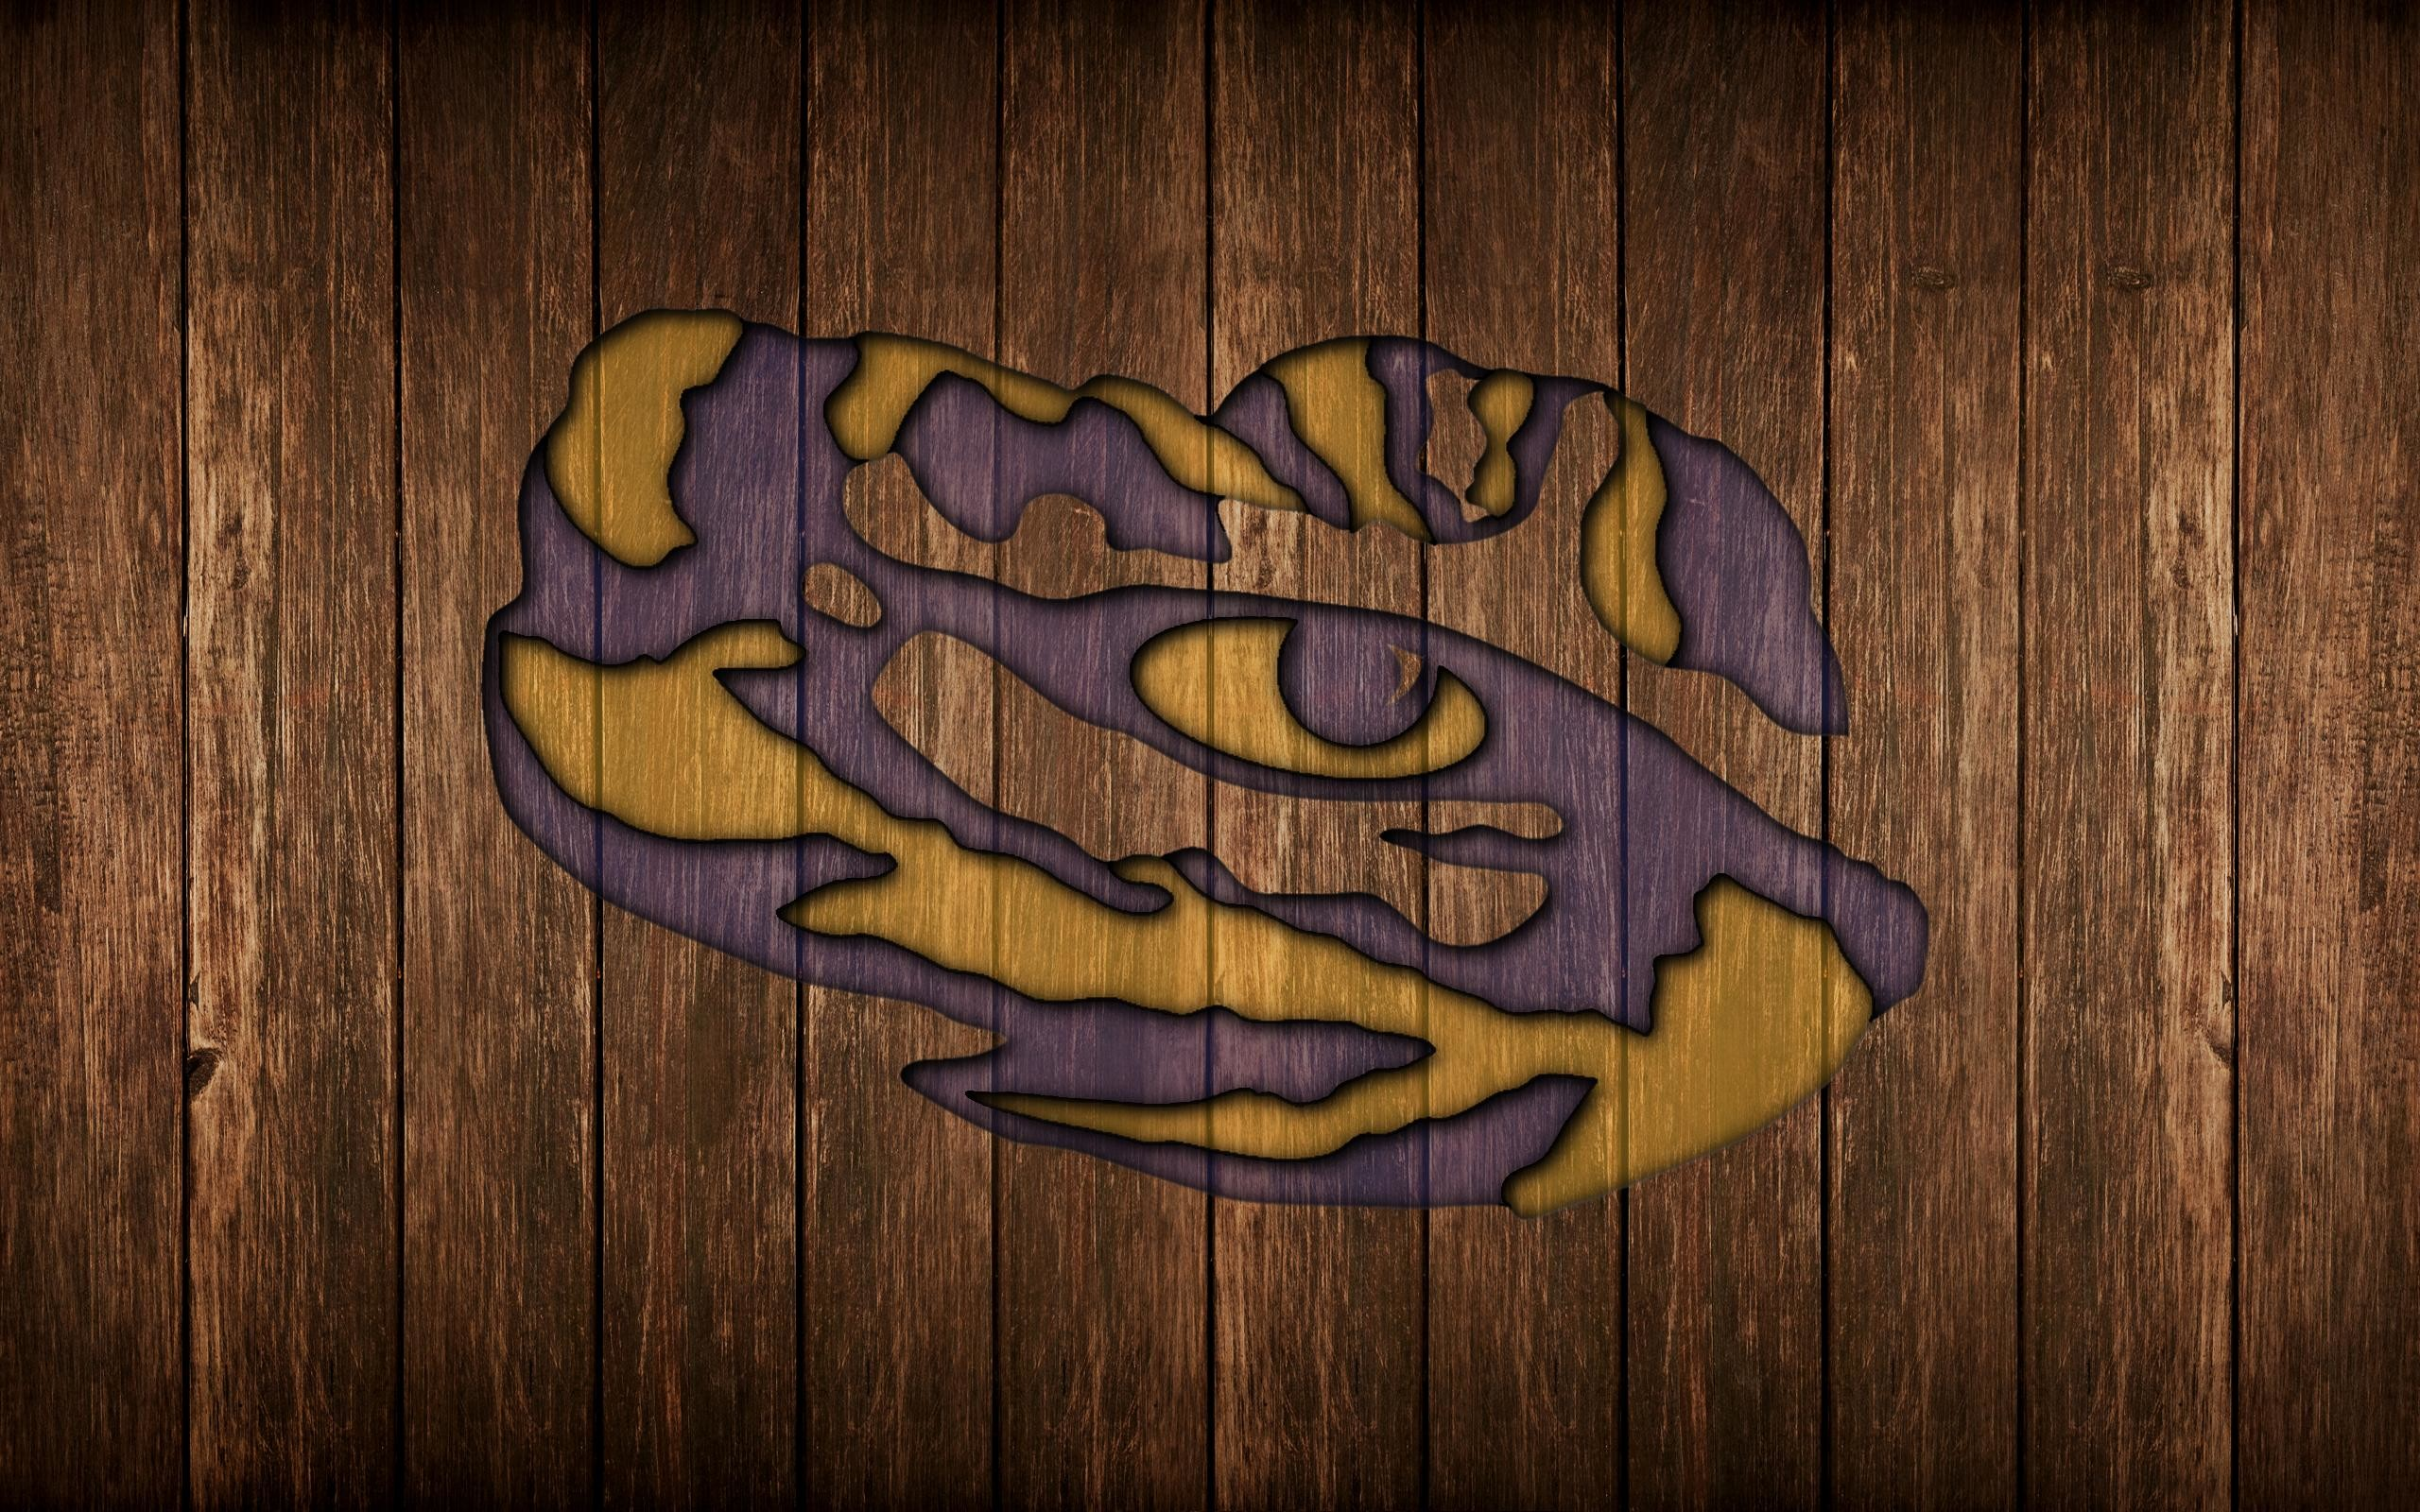 2560x1600 Some new LSU wallpapers I have been working on TigerDroppingscom